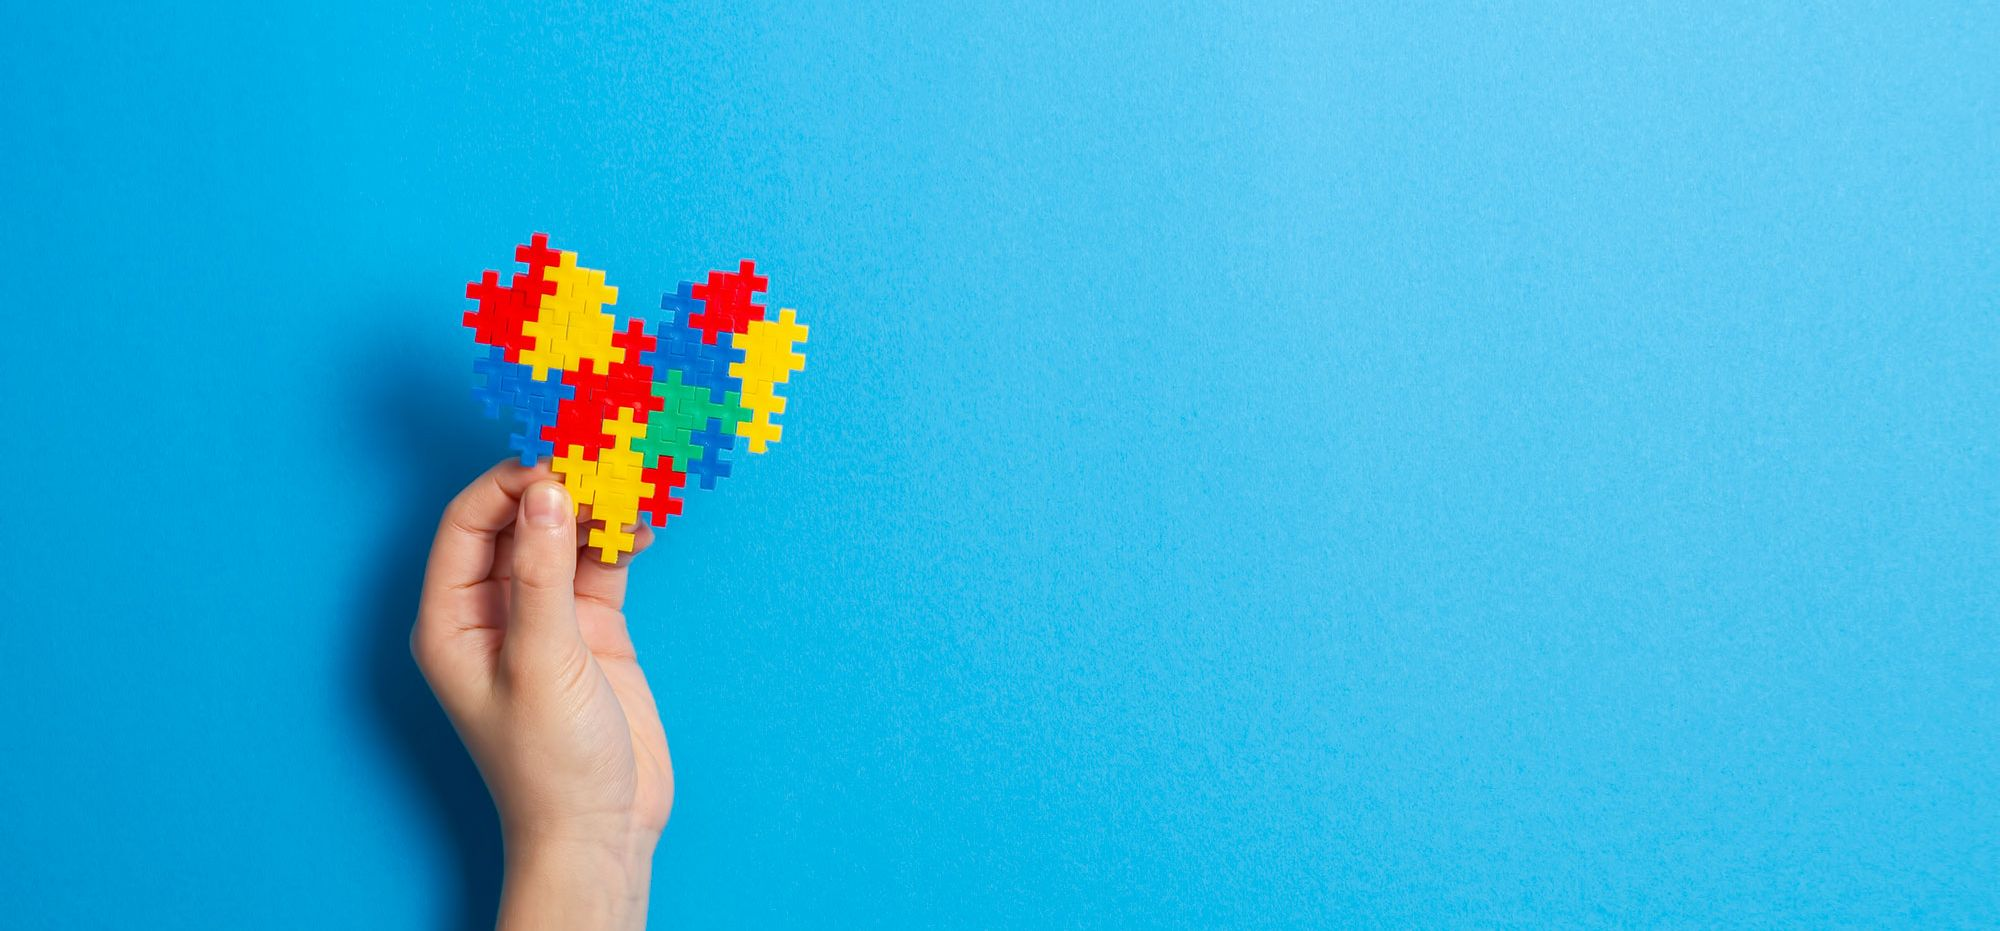 Hand holding a puzzle heart, autism awareness